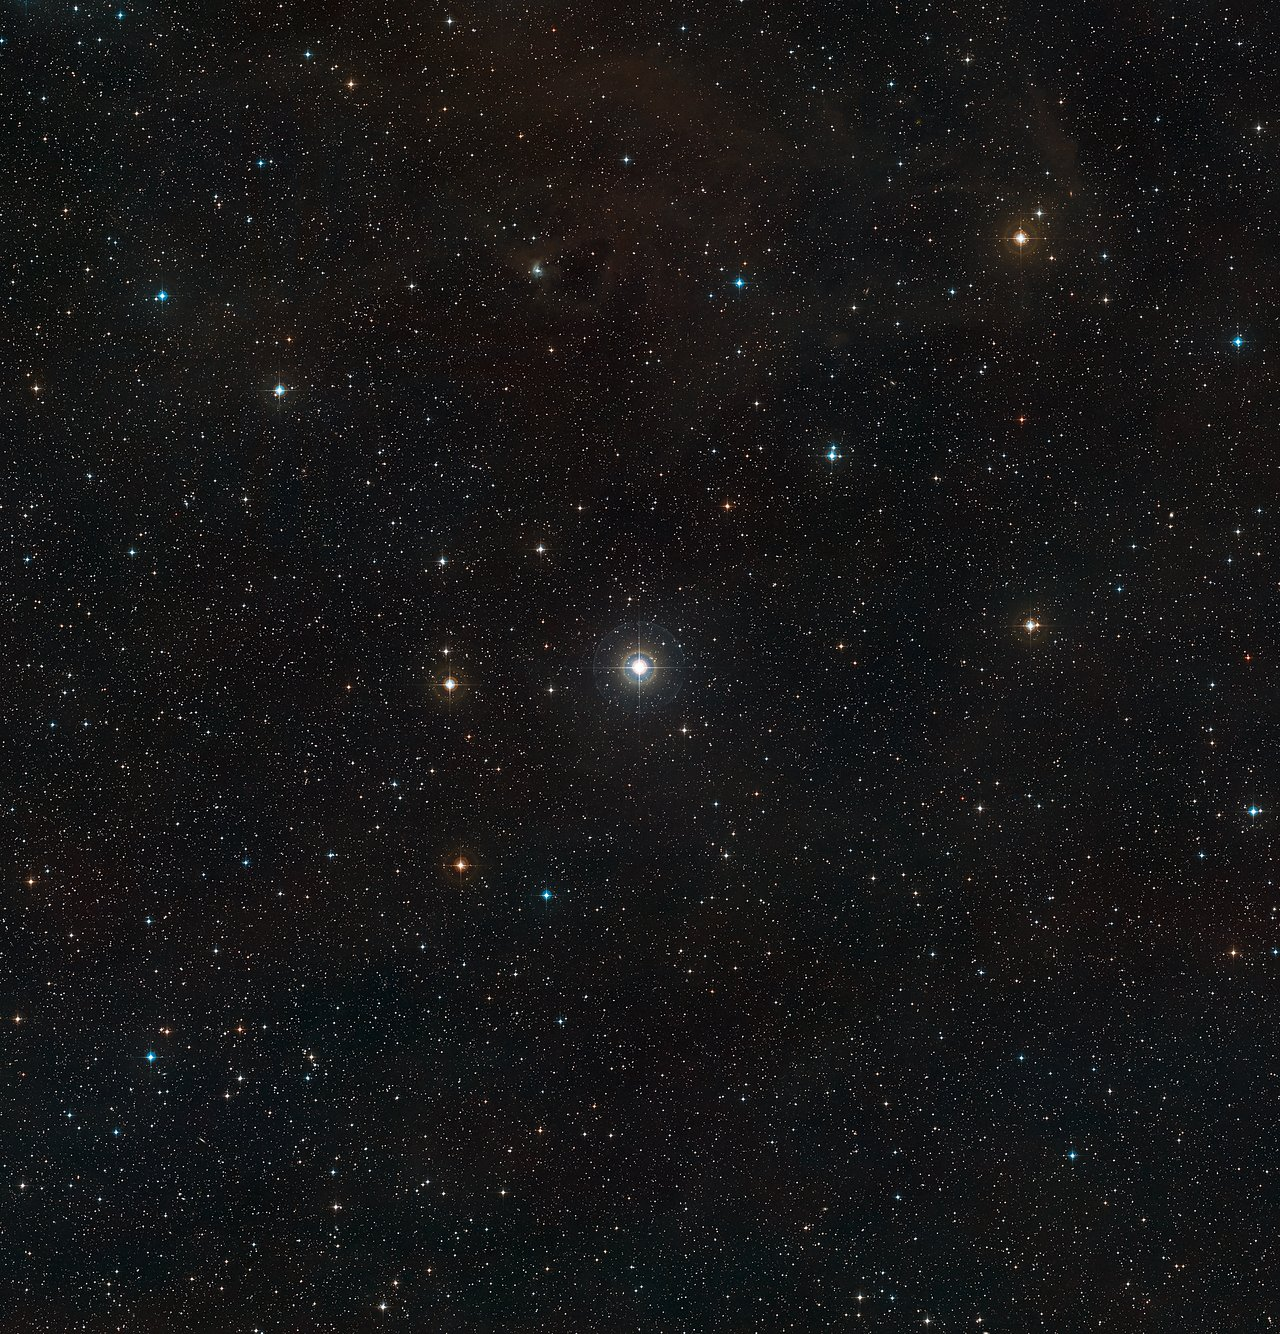 Wide field view of the unusual double star SS Leporis